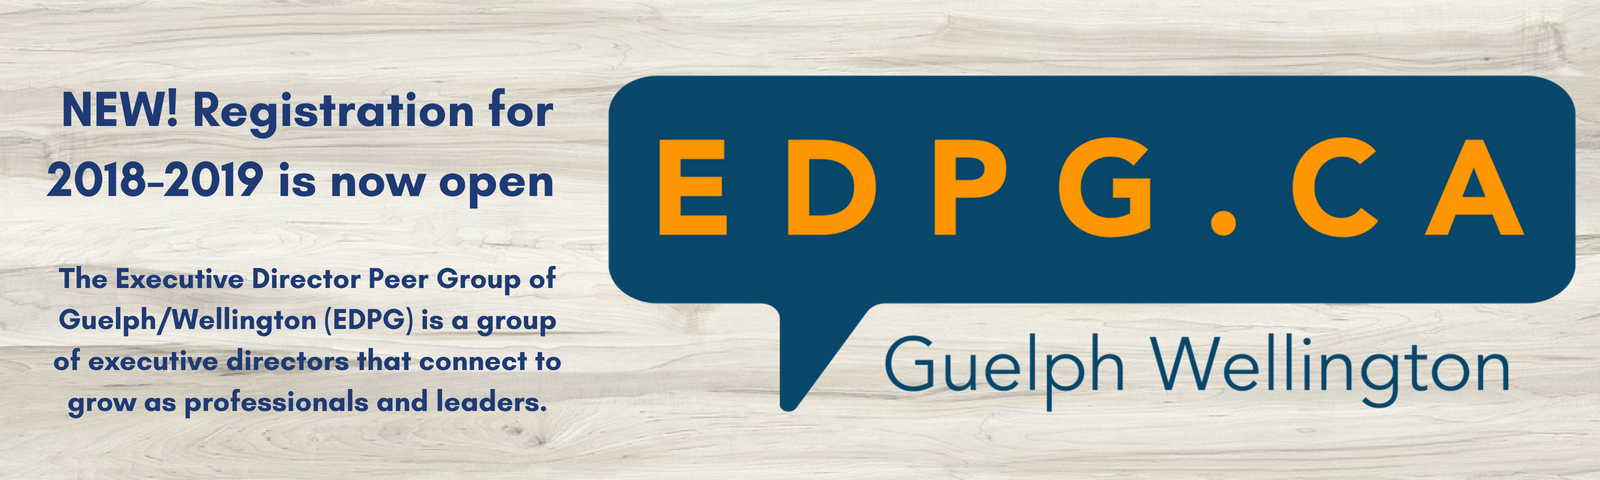 the executive director peer group of guelph-wellington registration is open now